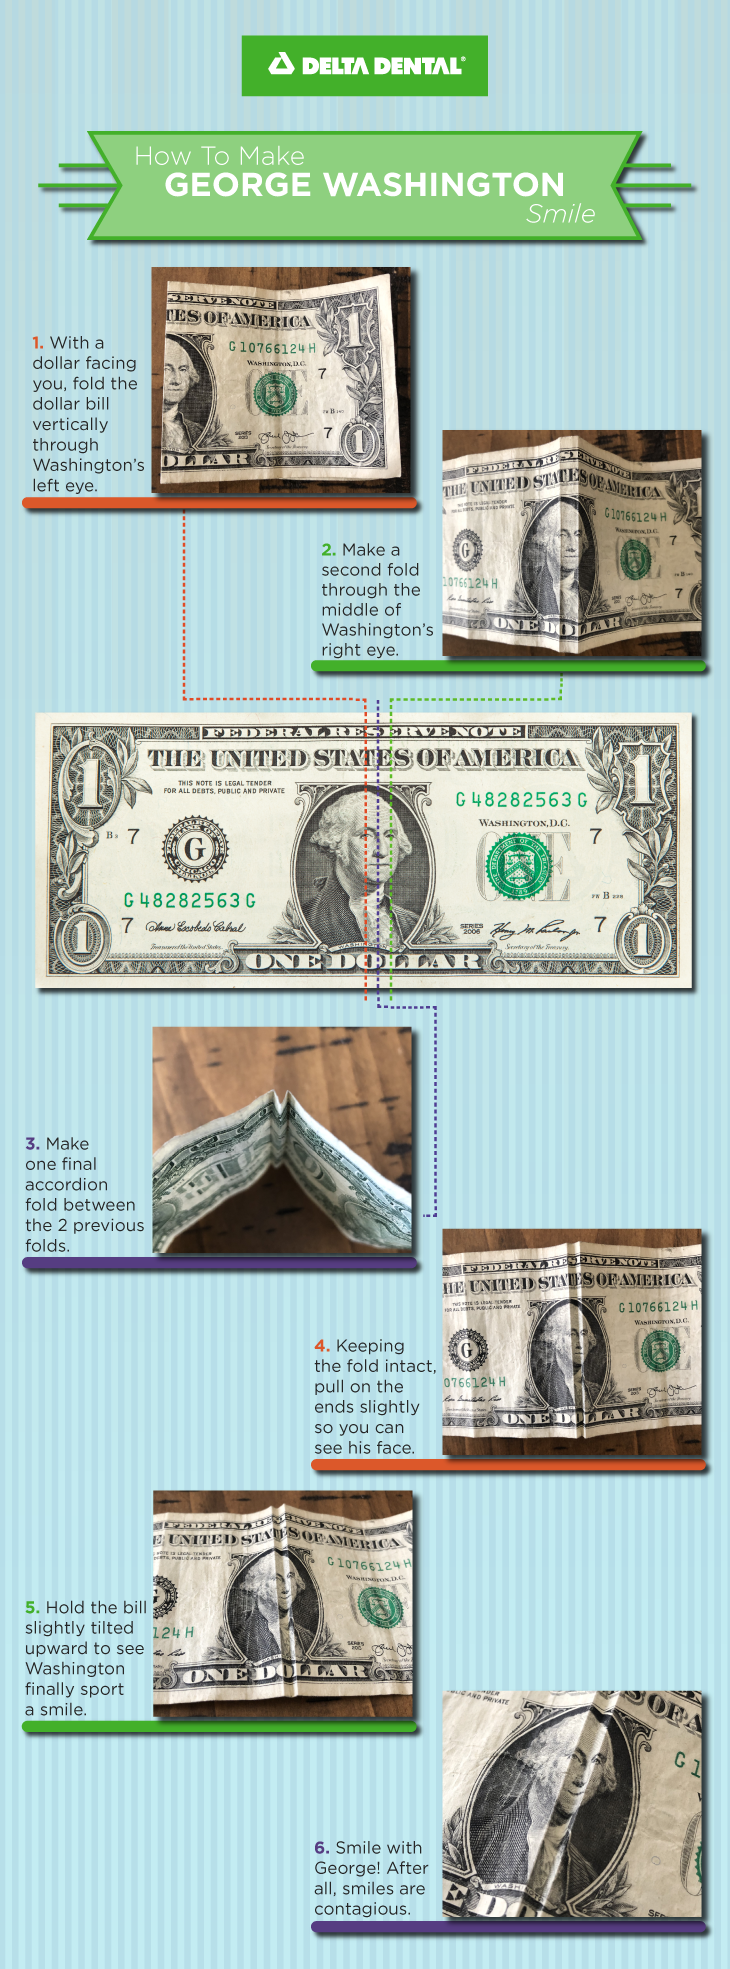 Grab a dollar bill and turn Washington's frown upside down with this quick and easy dental-themed cr